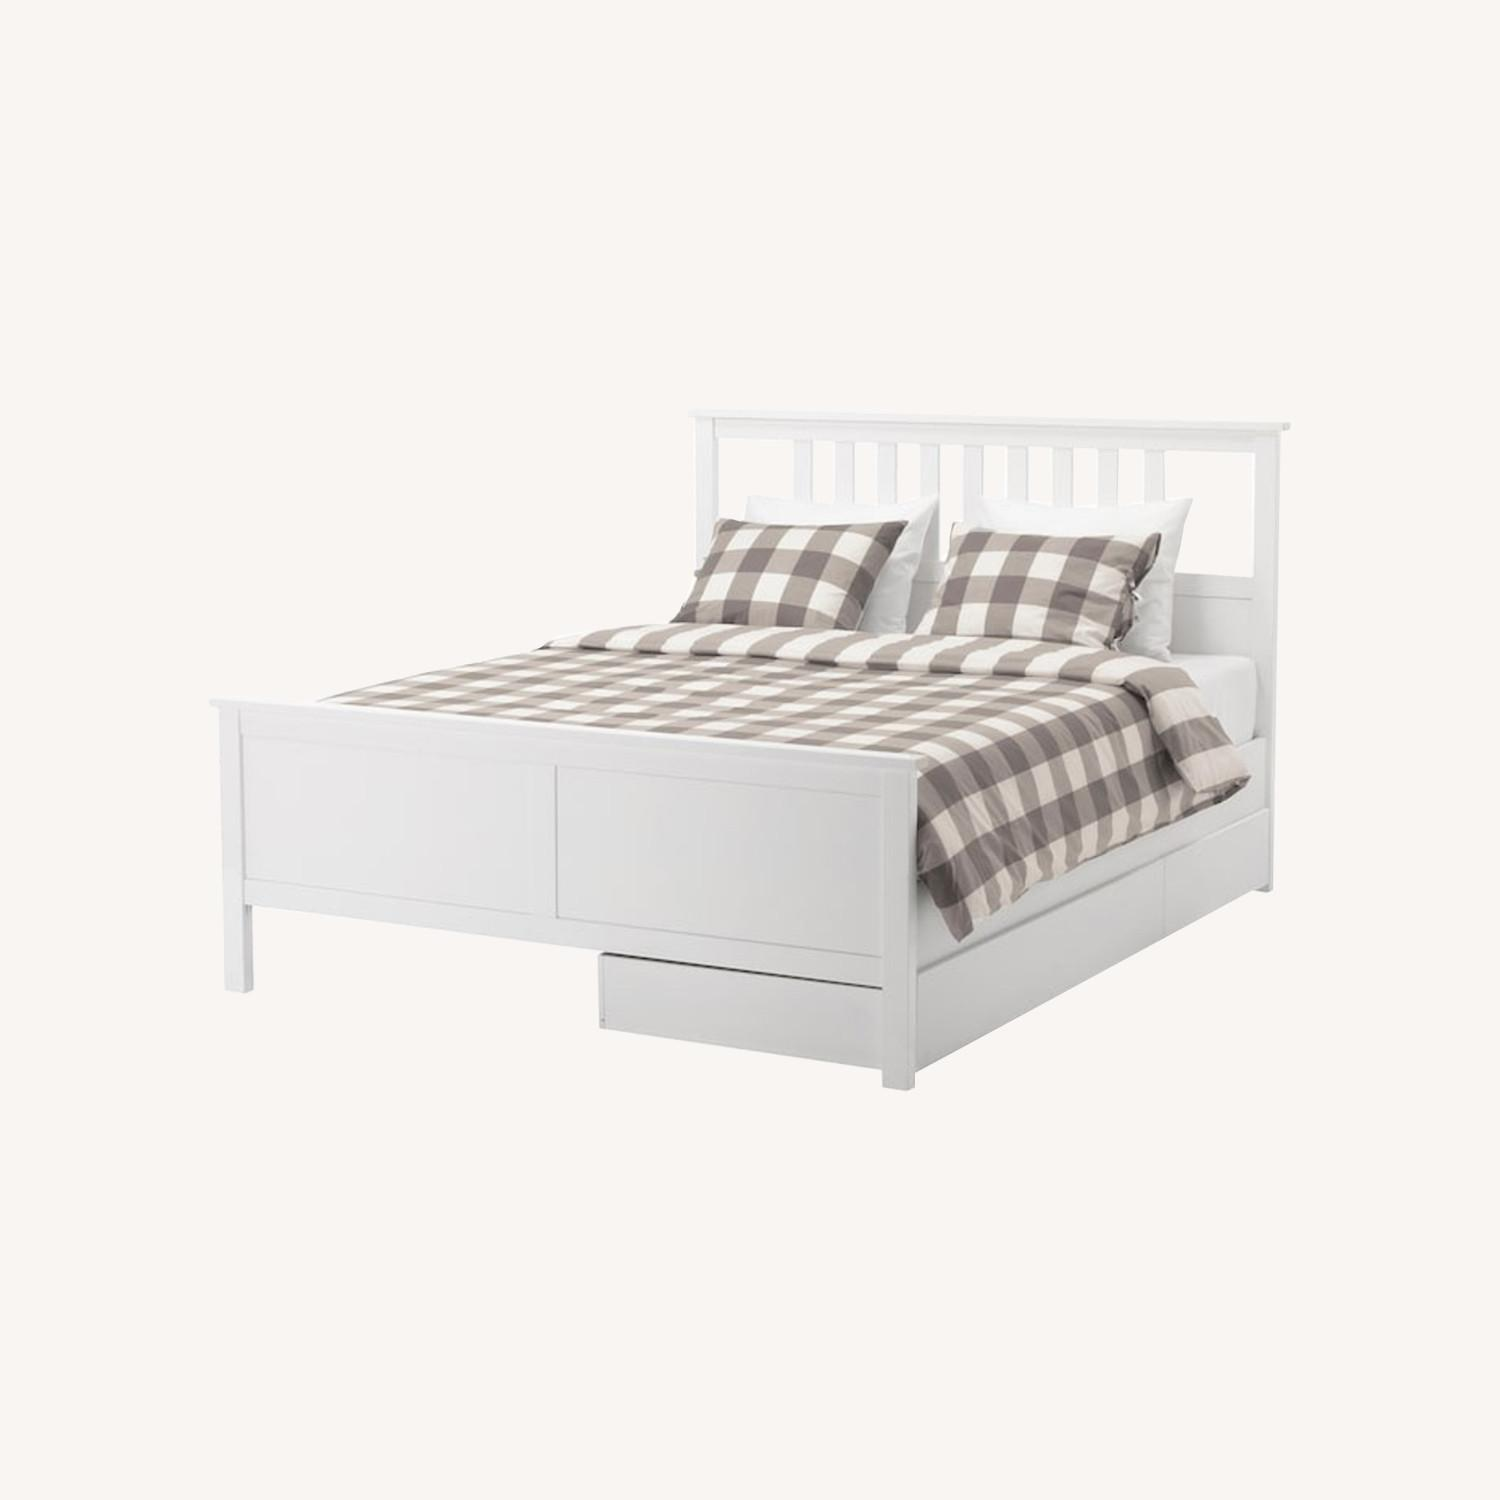 IKEA Hemnes Queen Bed - image-0